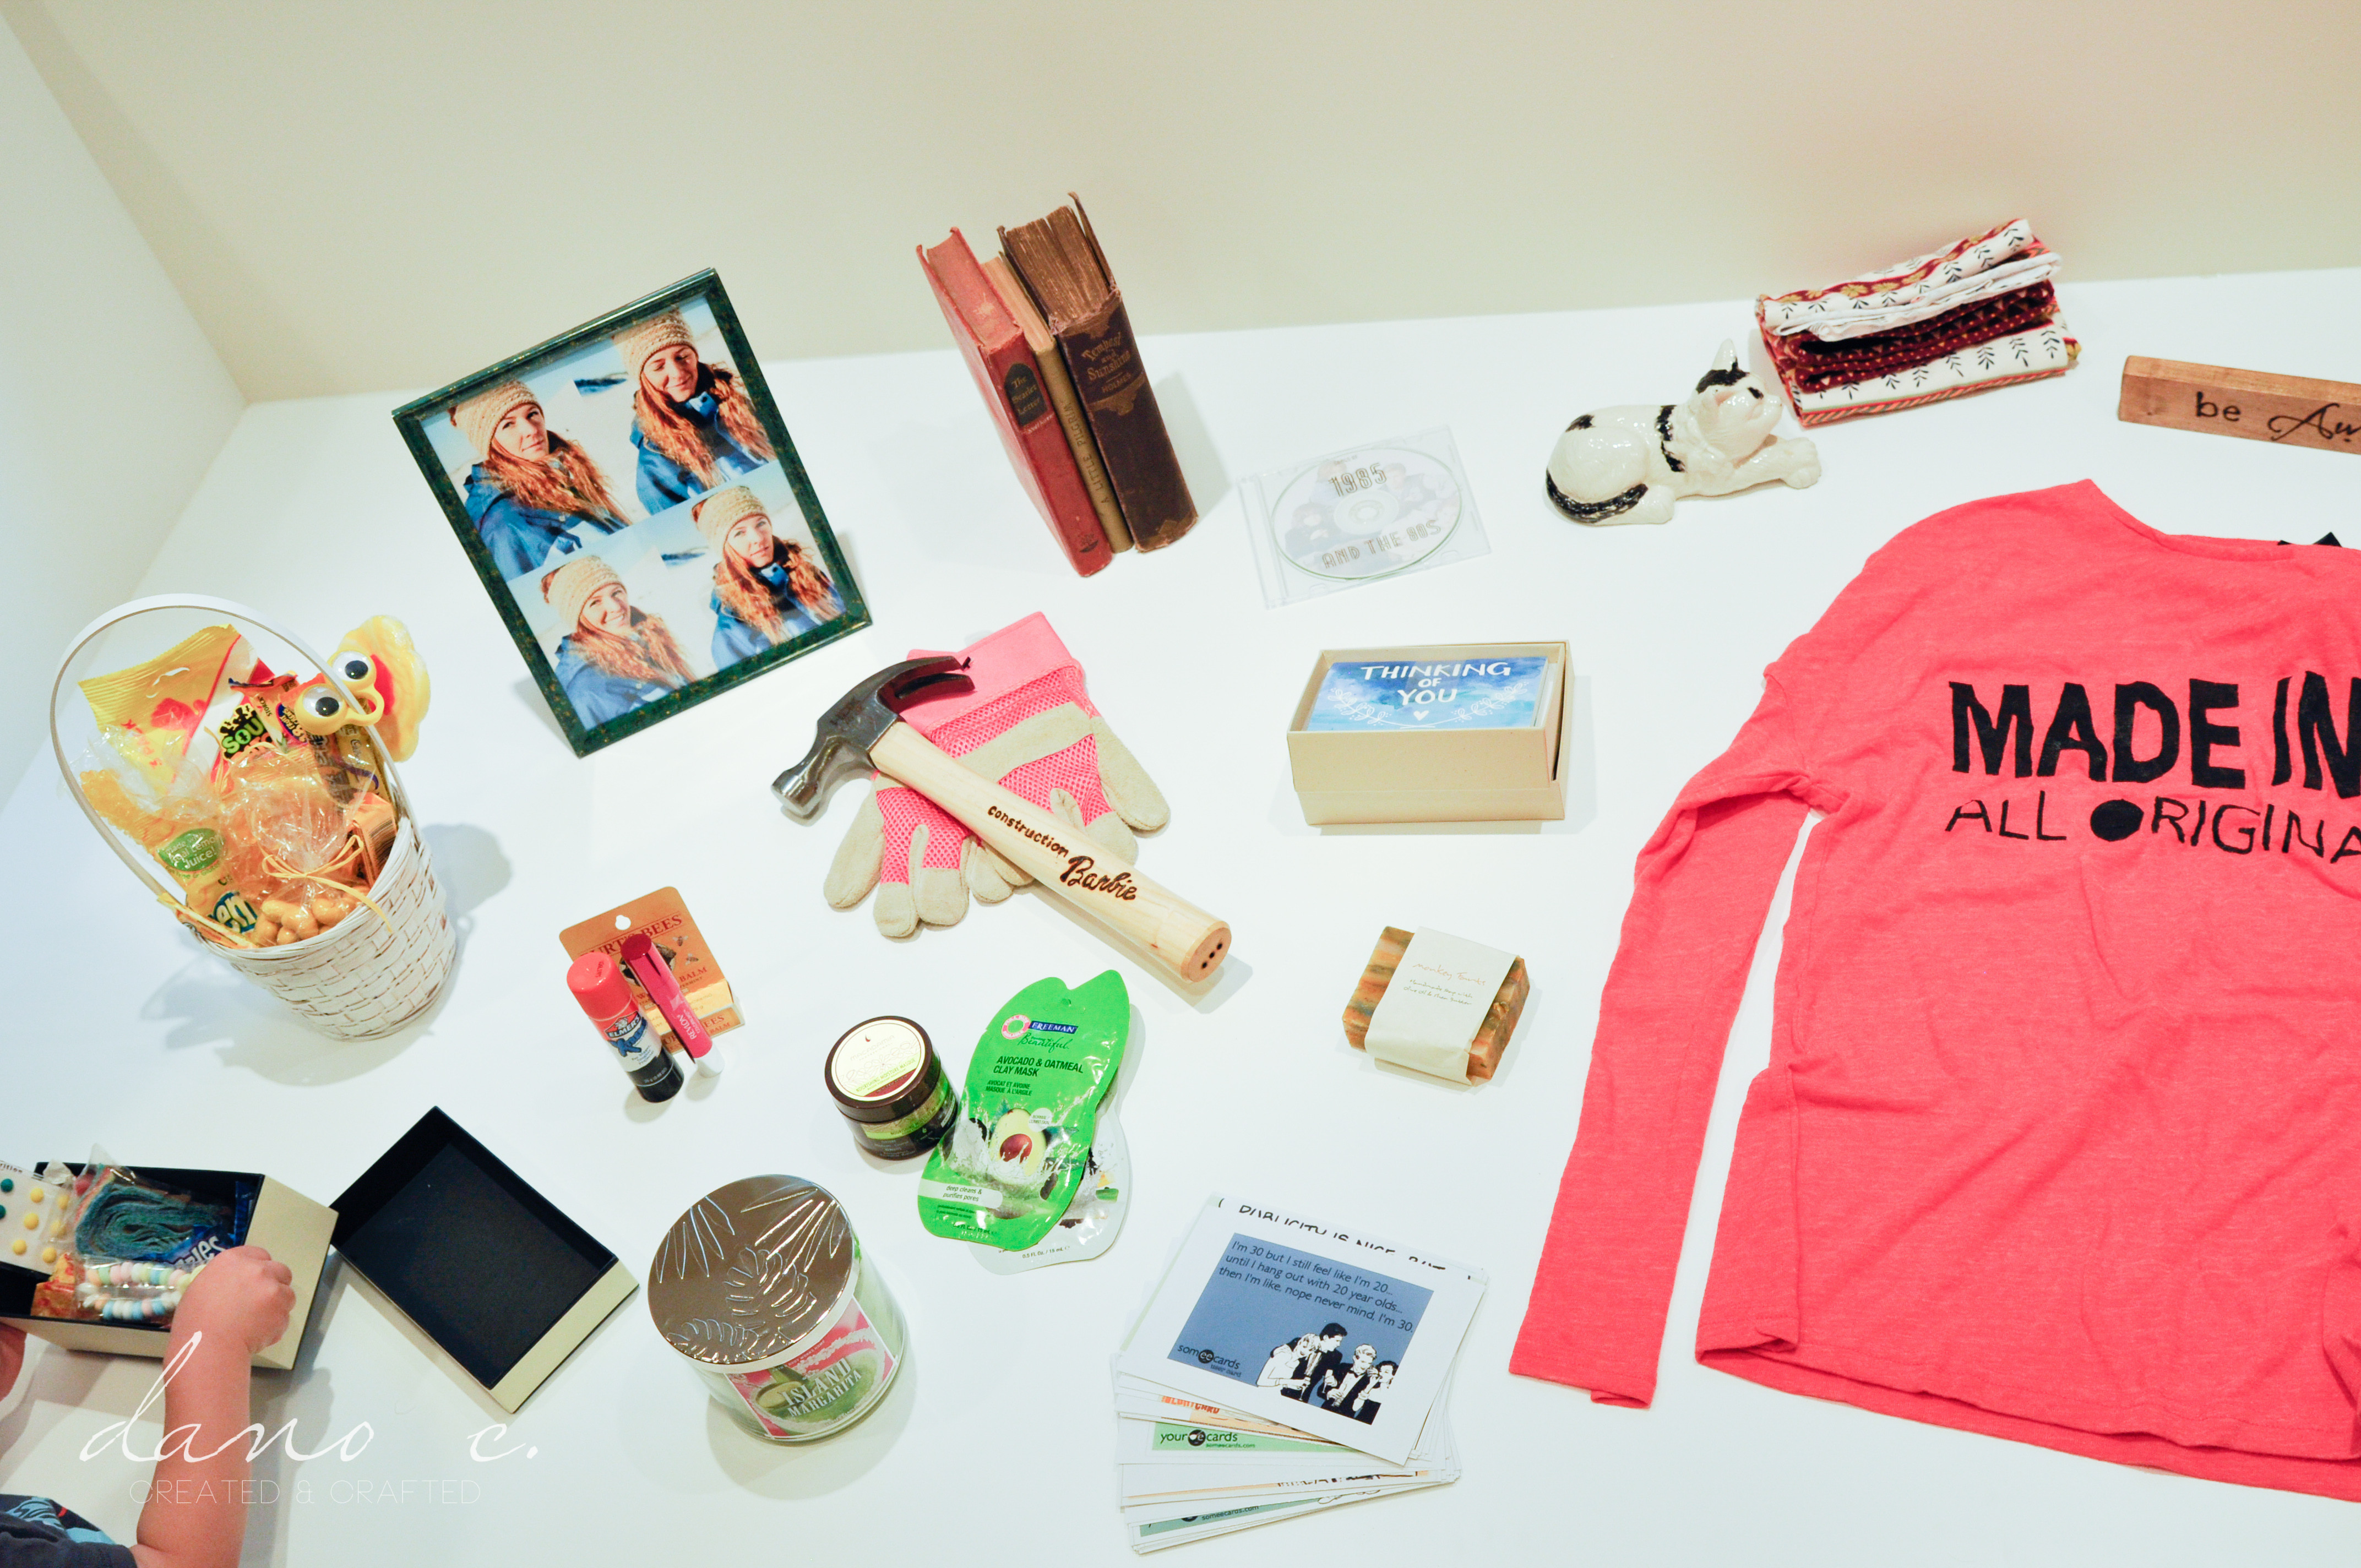 30 Gifts For 30Th Birthday For Her  30 Days of Gifts 30th Birthday Ideas